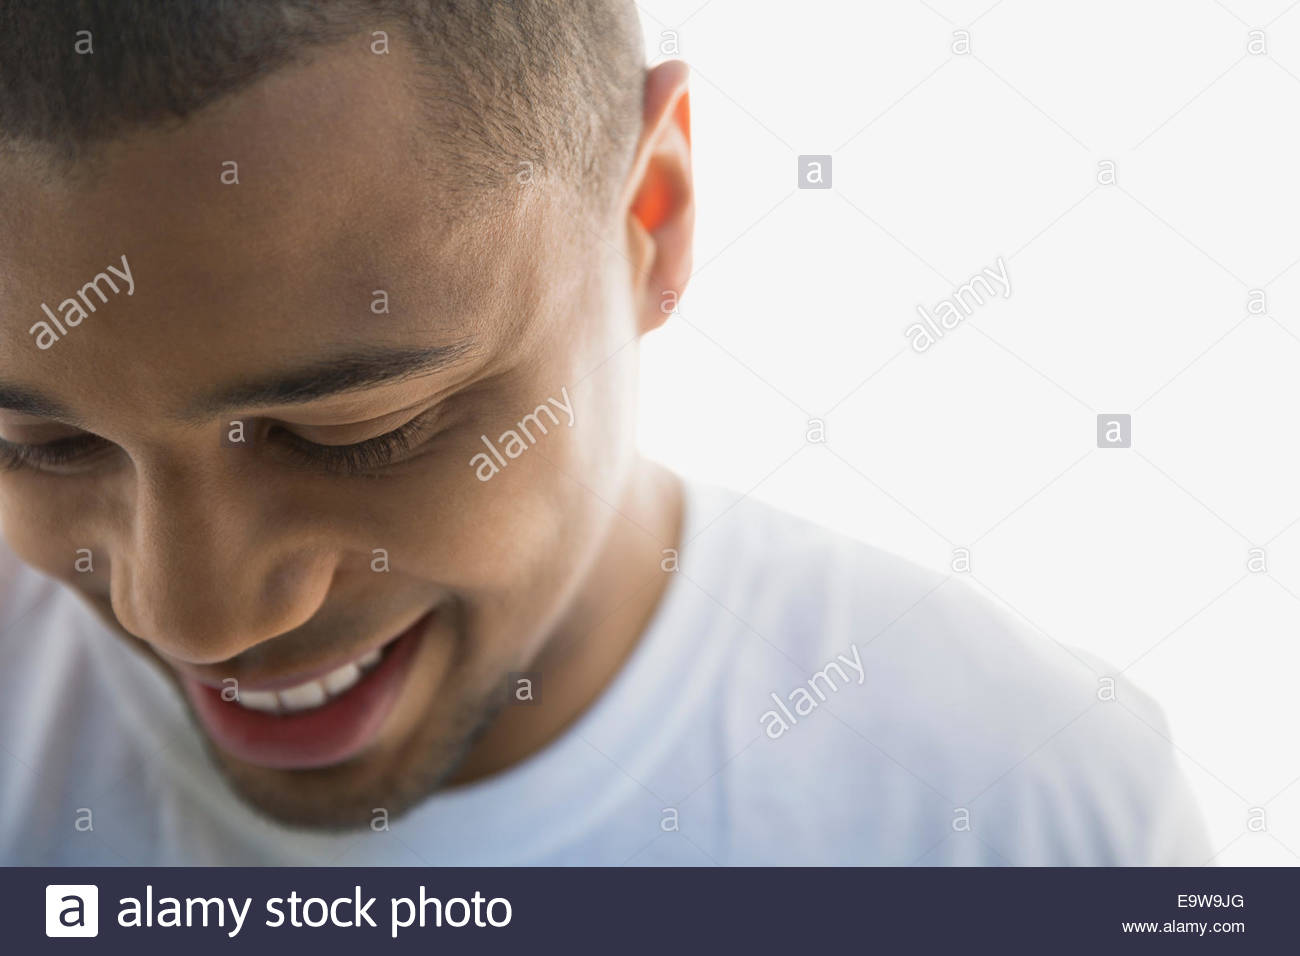 Close up portrait of smiling man looking down - Stock Image